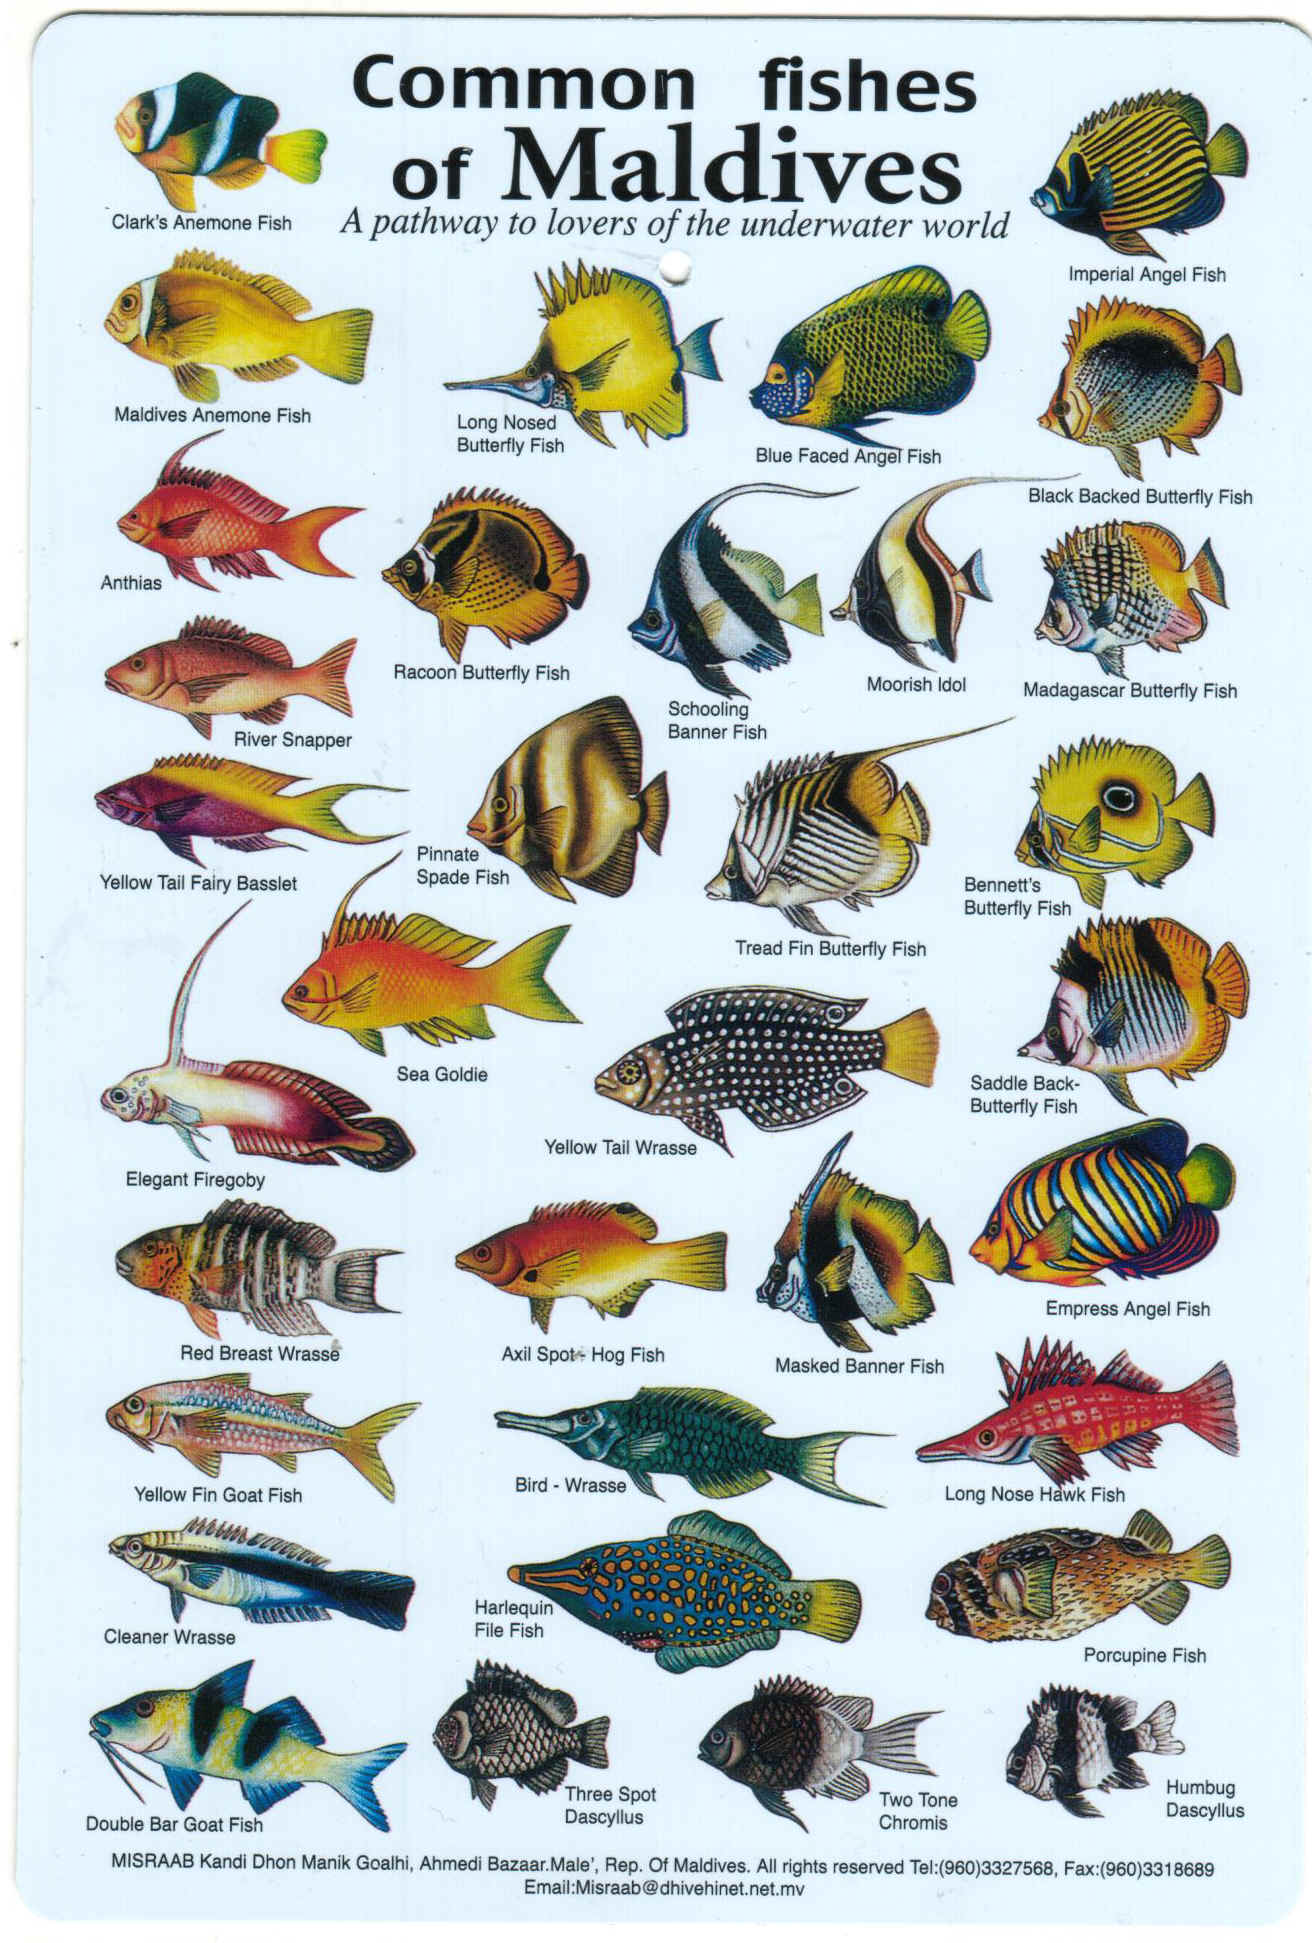 Fishes of the Maldives Identification Chart